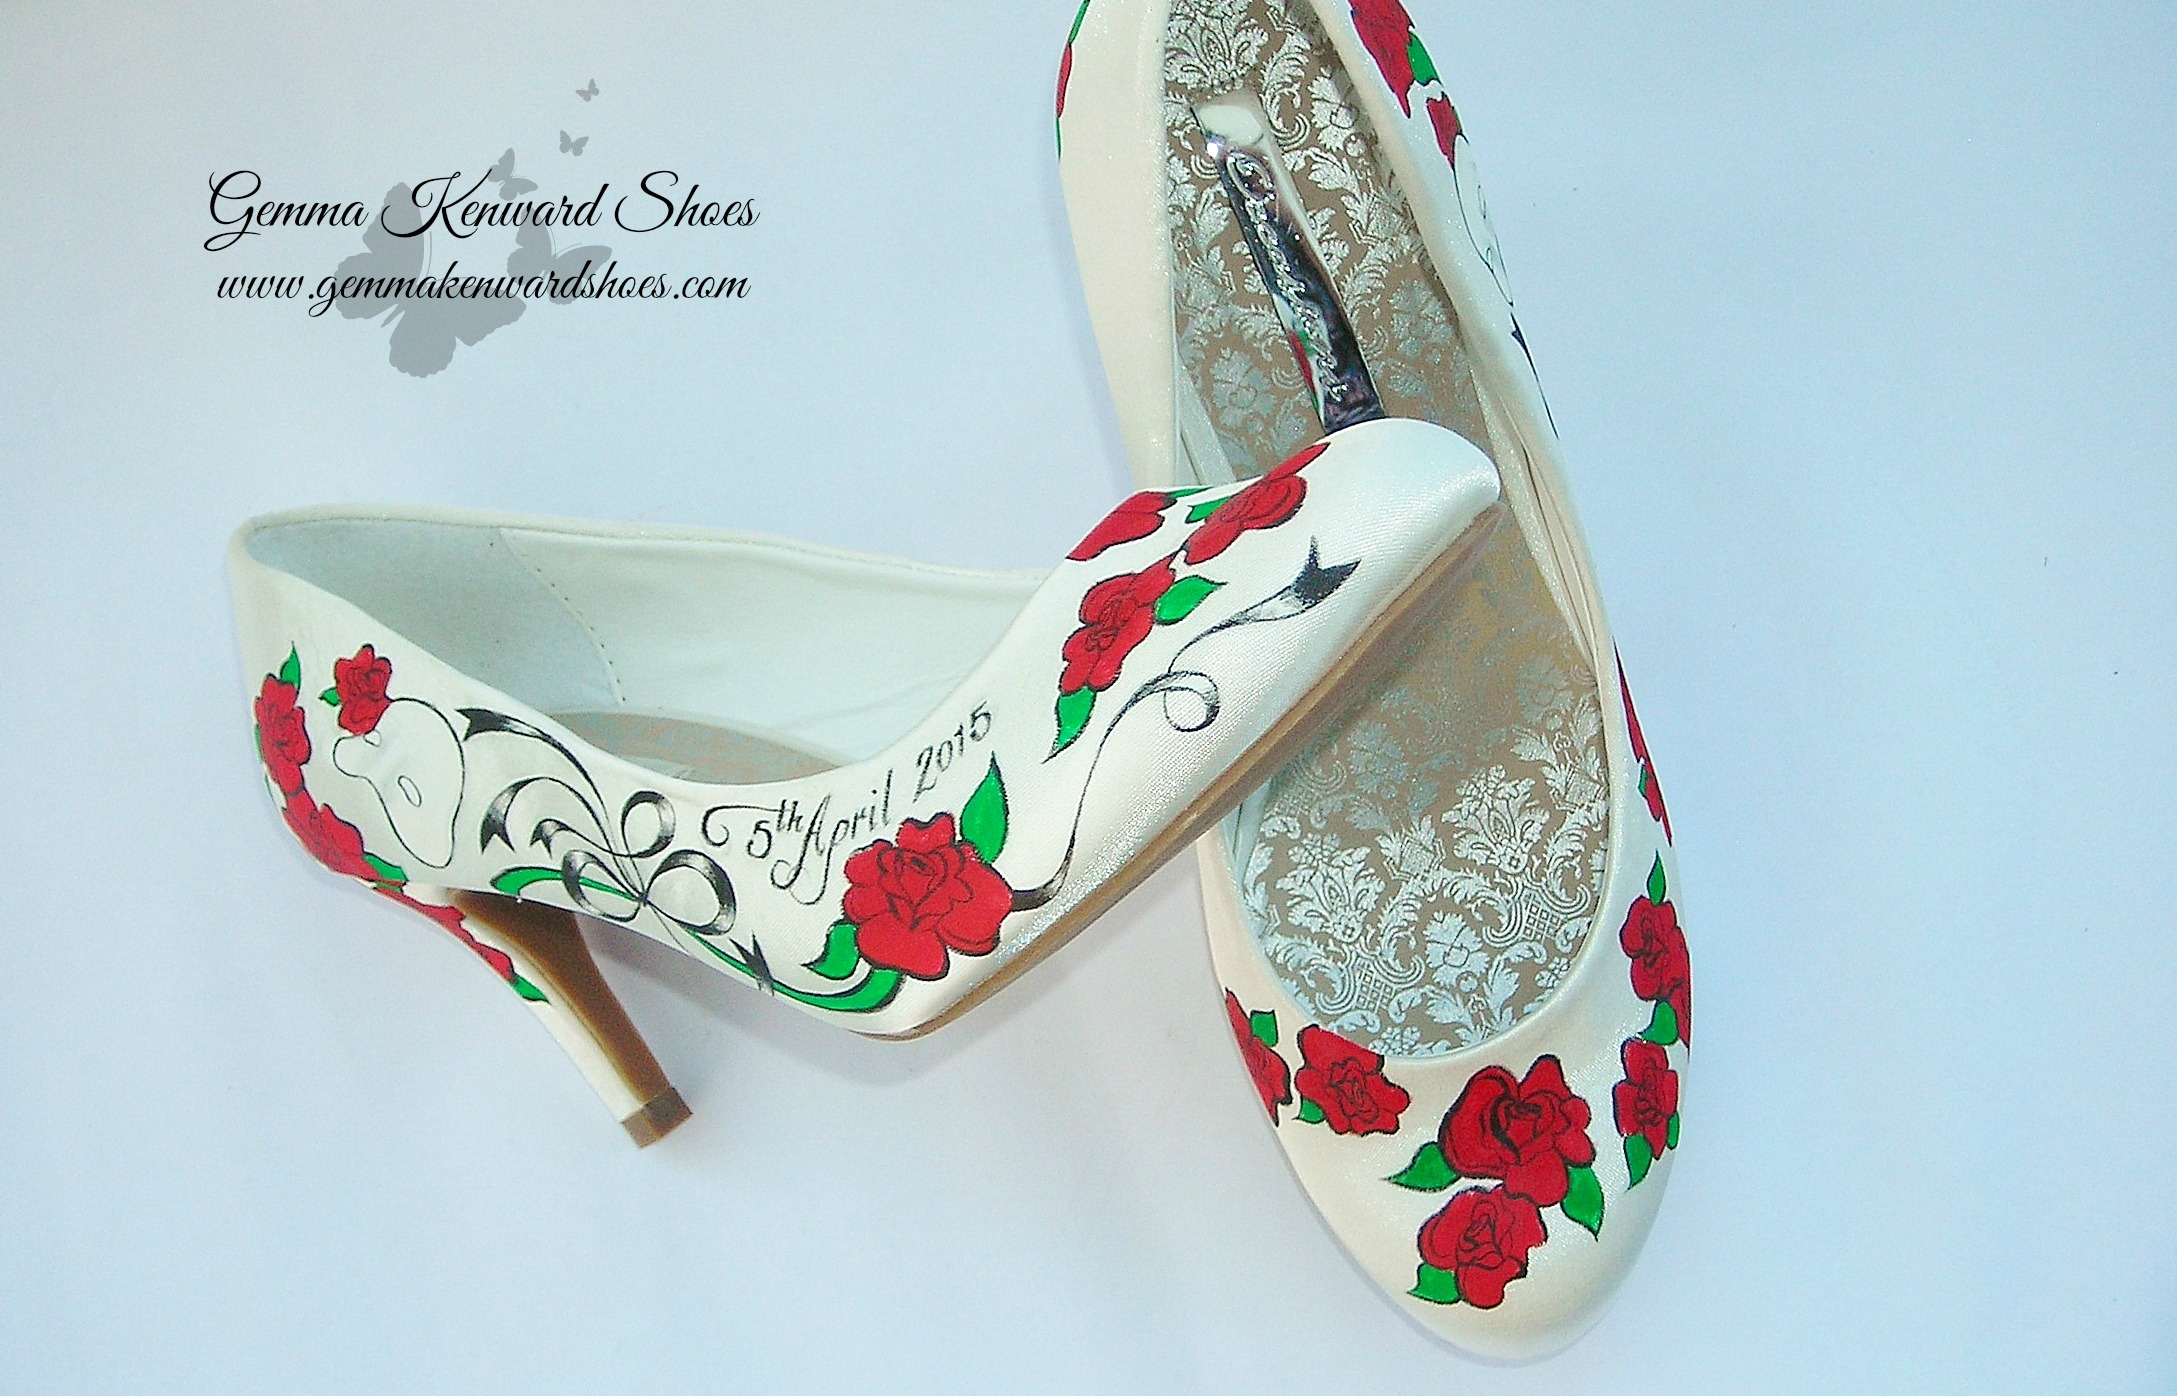 Hand Painted Doctor Who and Phantom of the Opera withred roses wedding shoes.